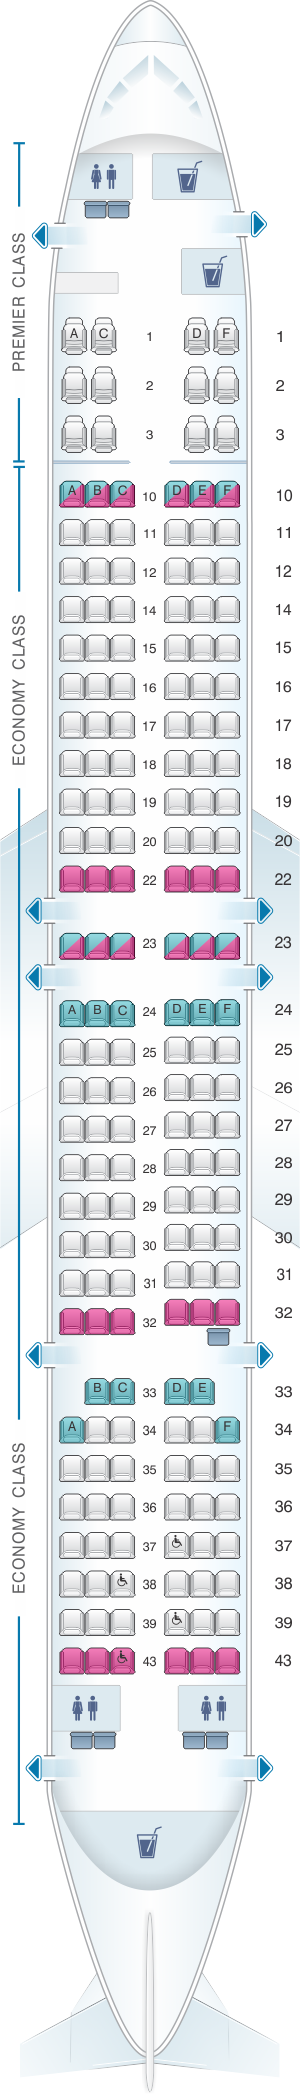 Seat map for Jet Airways Boeing B737 900ER 184PAX